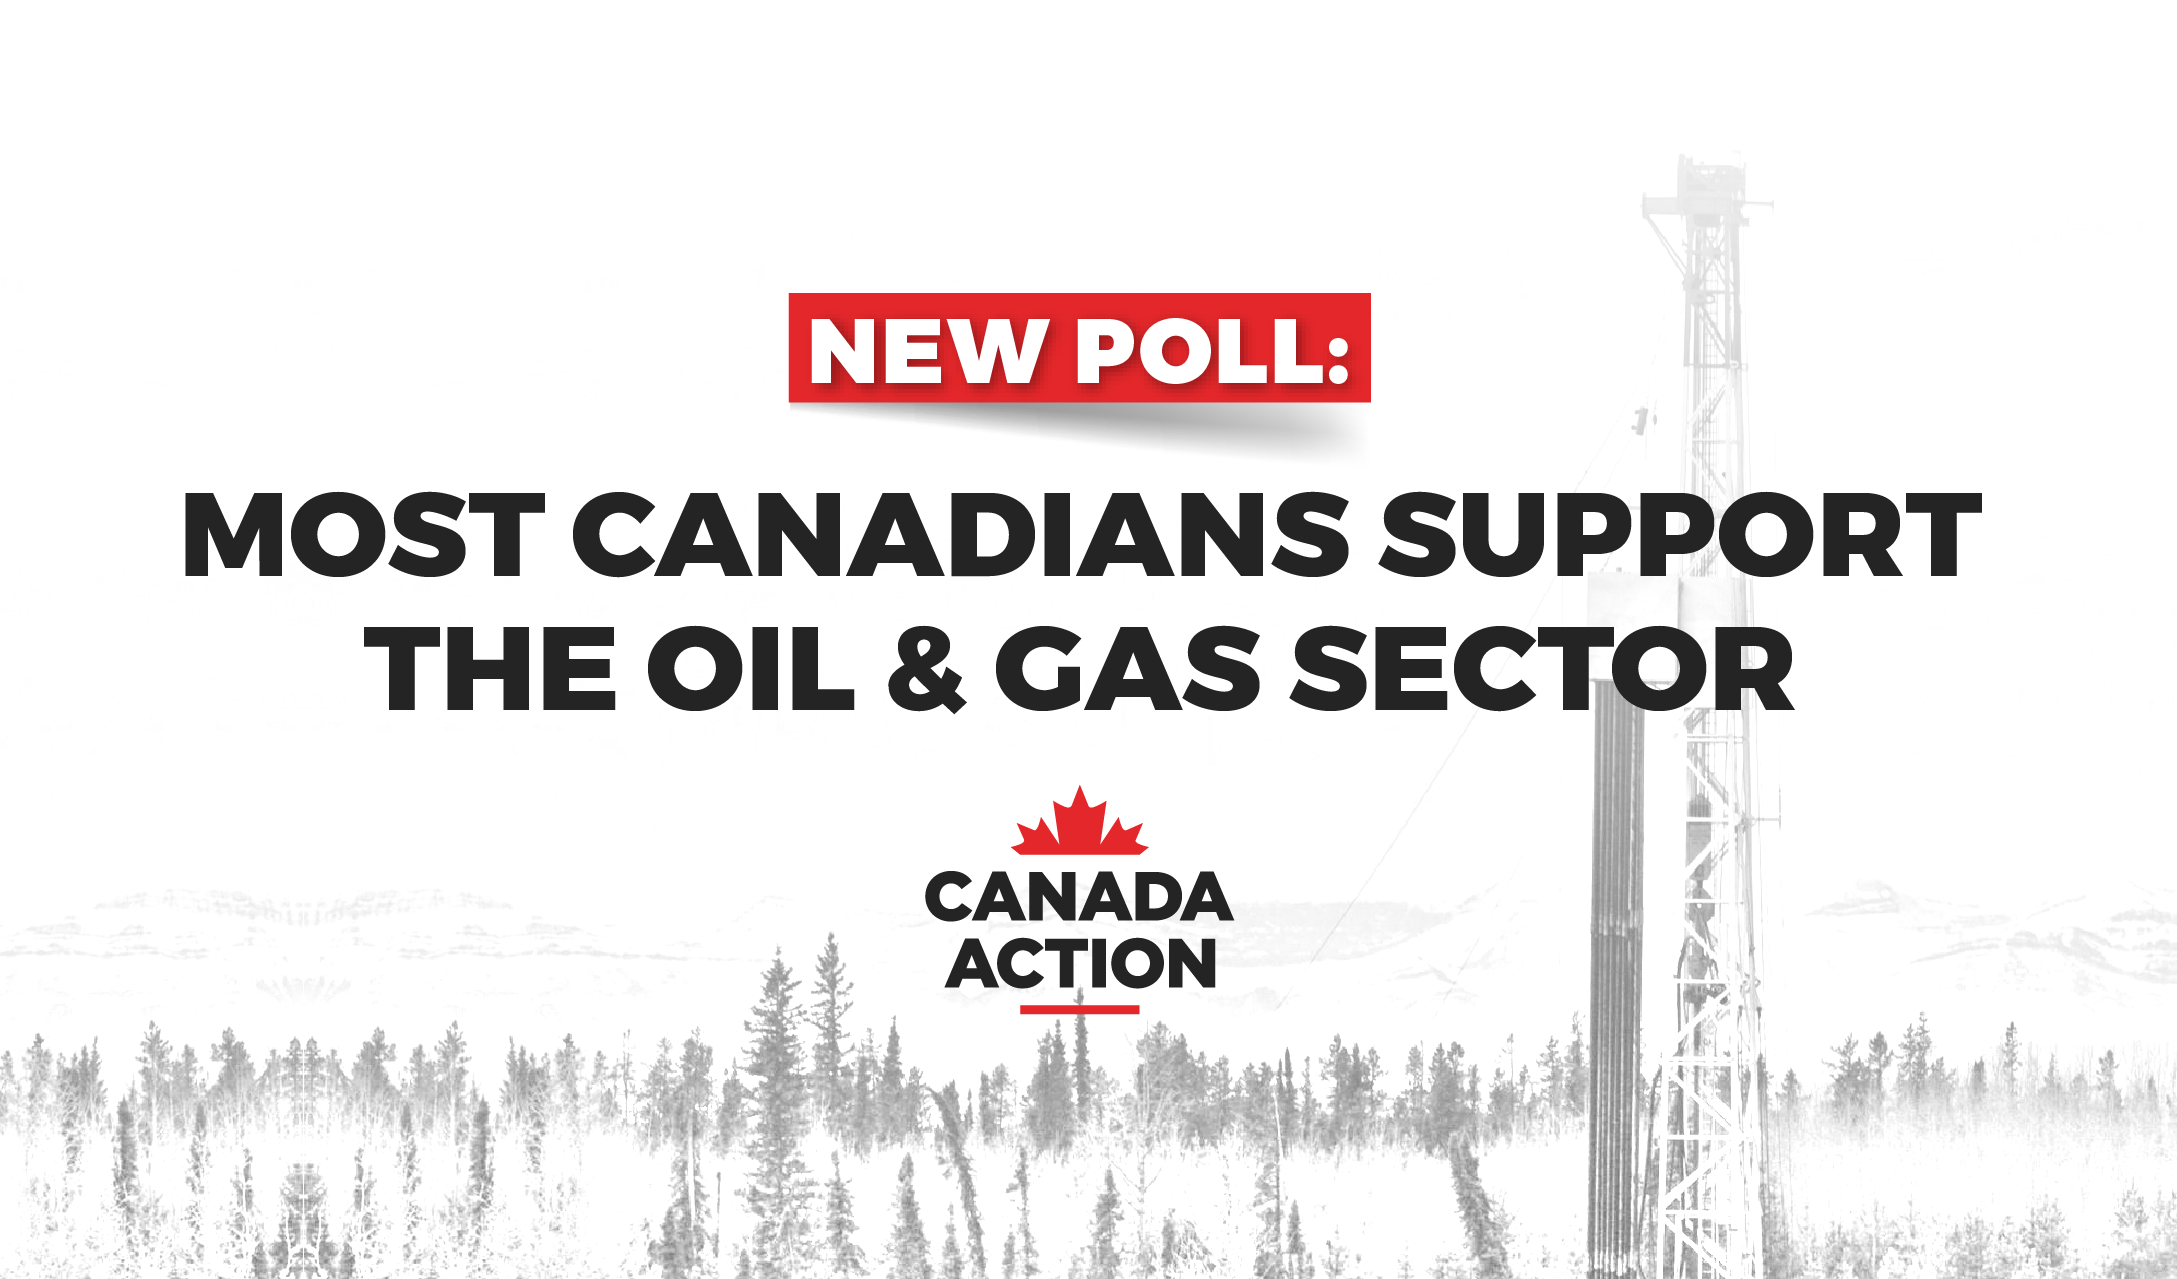 Image: A Majority of Canadians 'Agree' that Canada Should Be a Preferred Global Supplier of Energy: POLL